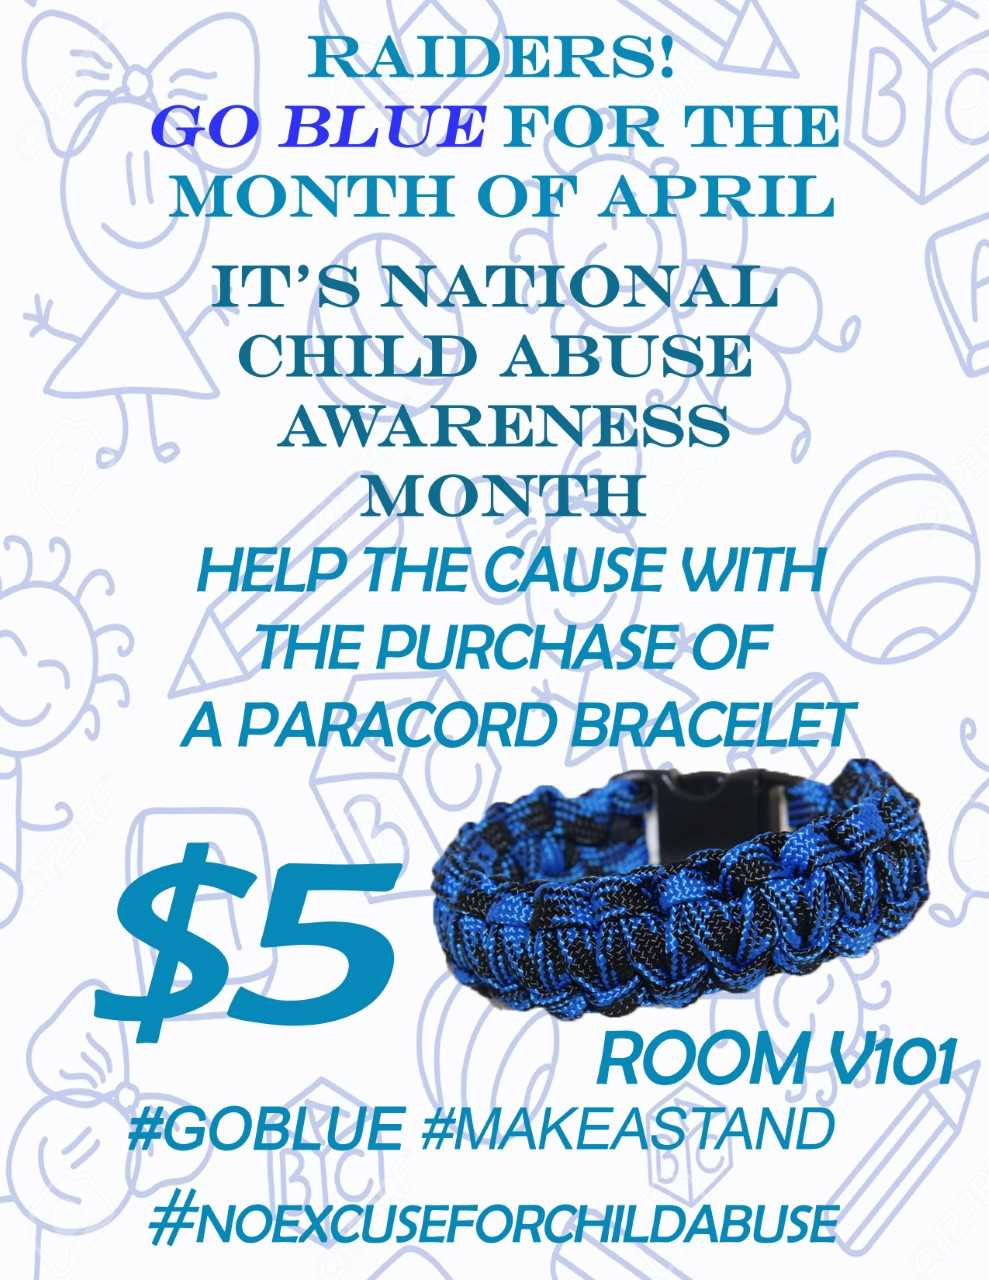 Raider Nation GO BLUE for the Month of April! It's National Child Abuse Awareness Month. Join the cause by purchasing a Paracord Bracelet in Room V101!